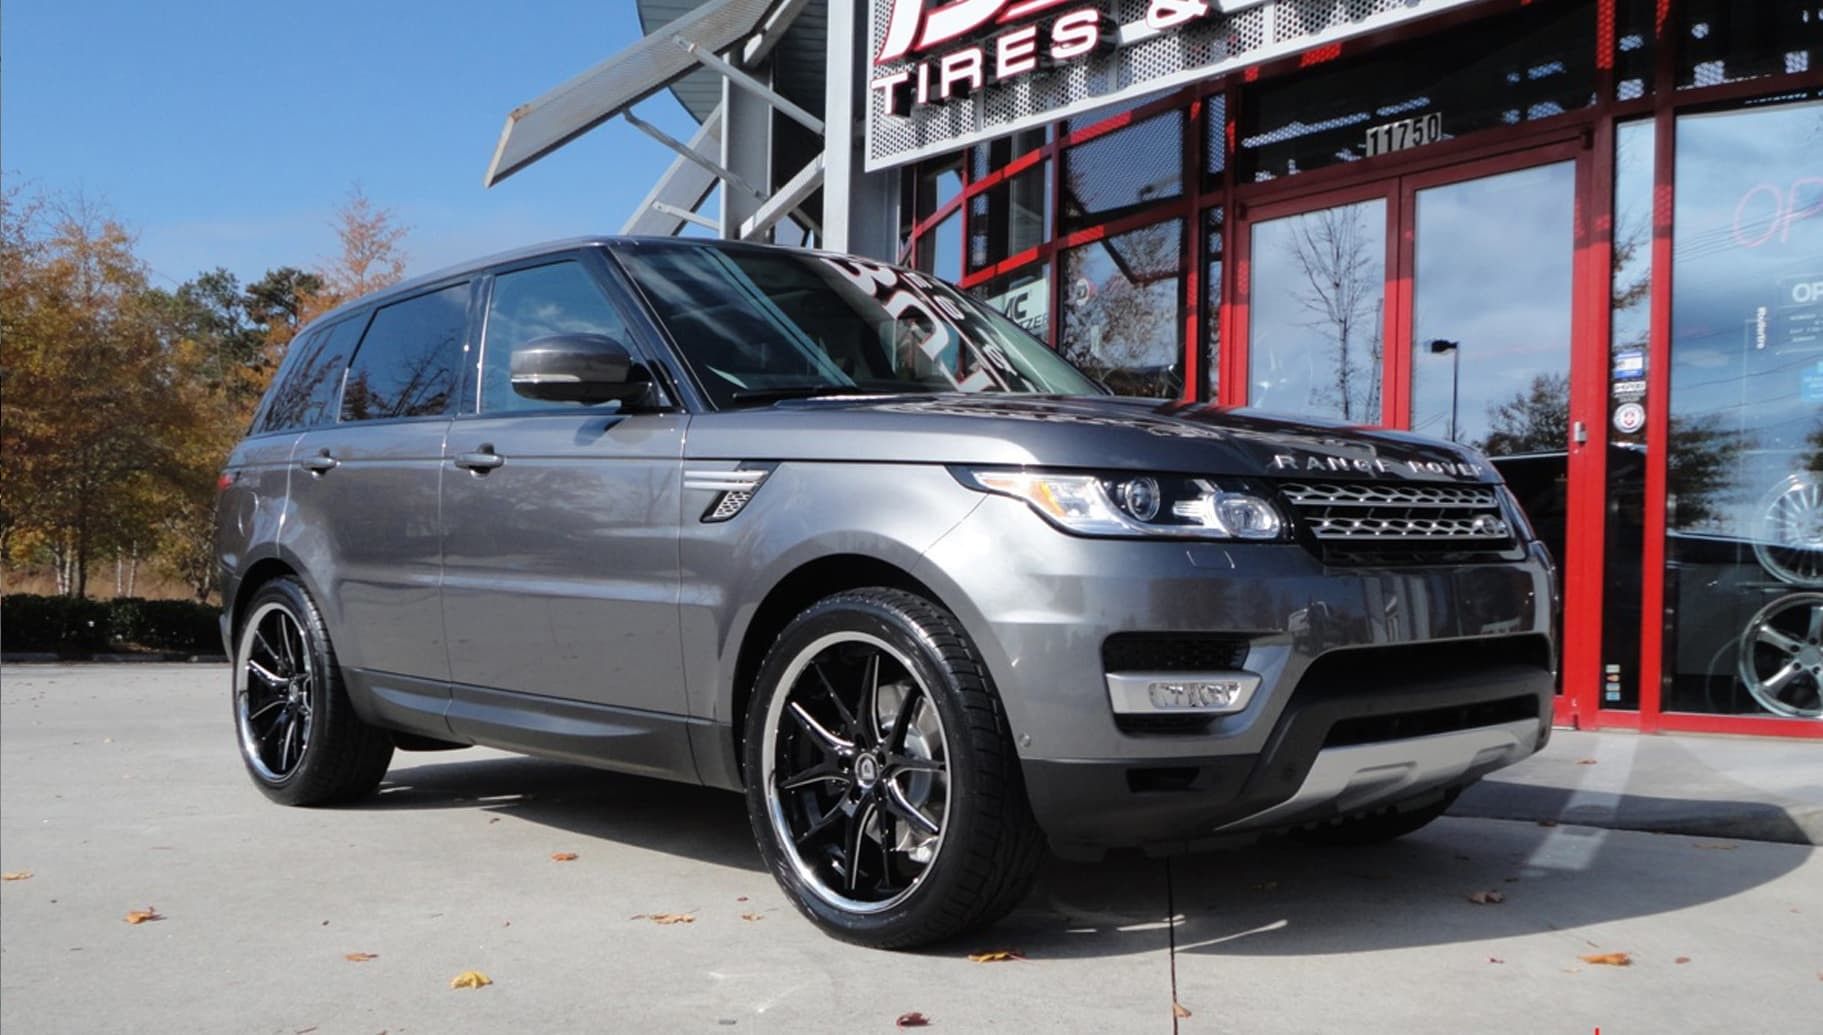 Machined edge R-Twelve on the Range Rover Sport.